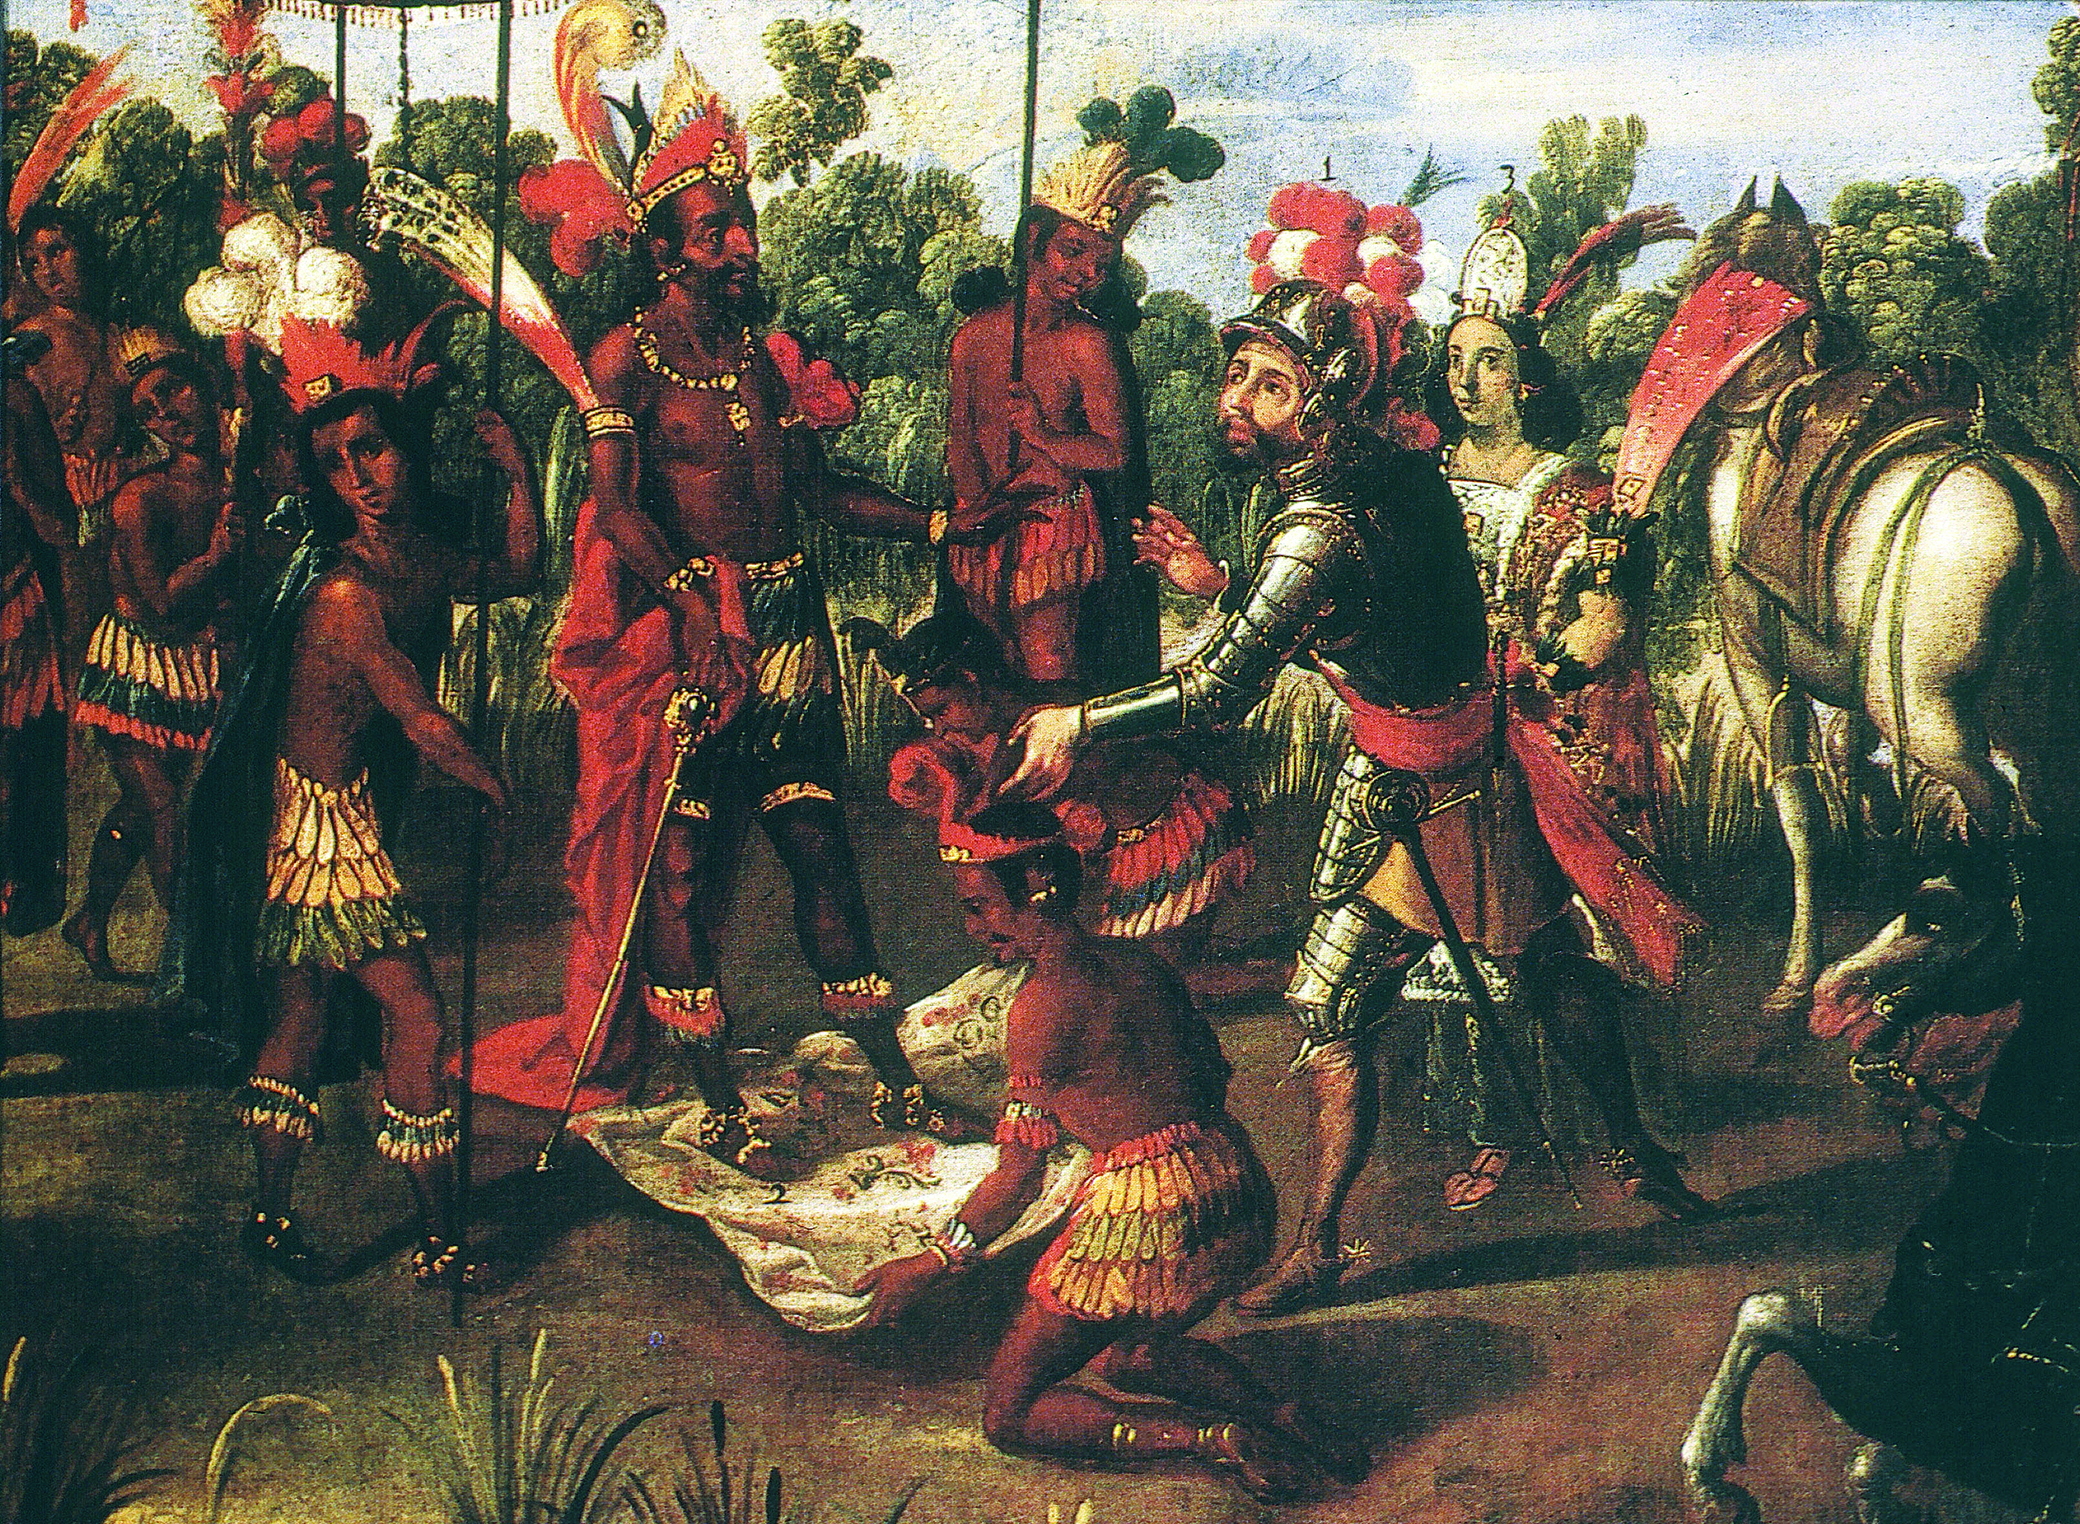 The Meeting of Cortés and Moctezuma, from the Conquest of México series, Mexico, second half of seventeenth century. Library of Congress, Rare Book and Special Collections Division, Jay I. Kislak Collection.